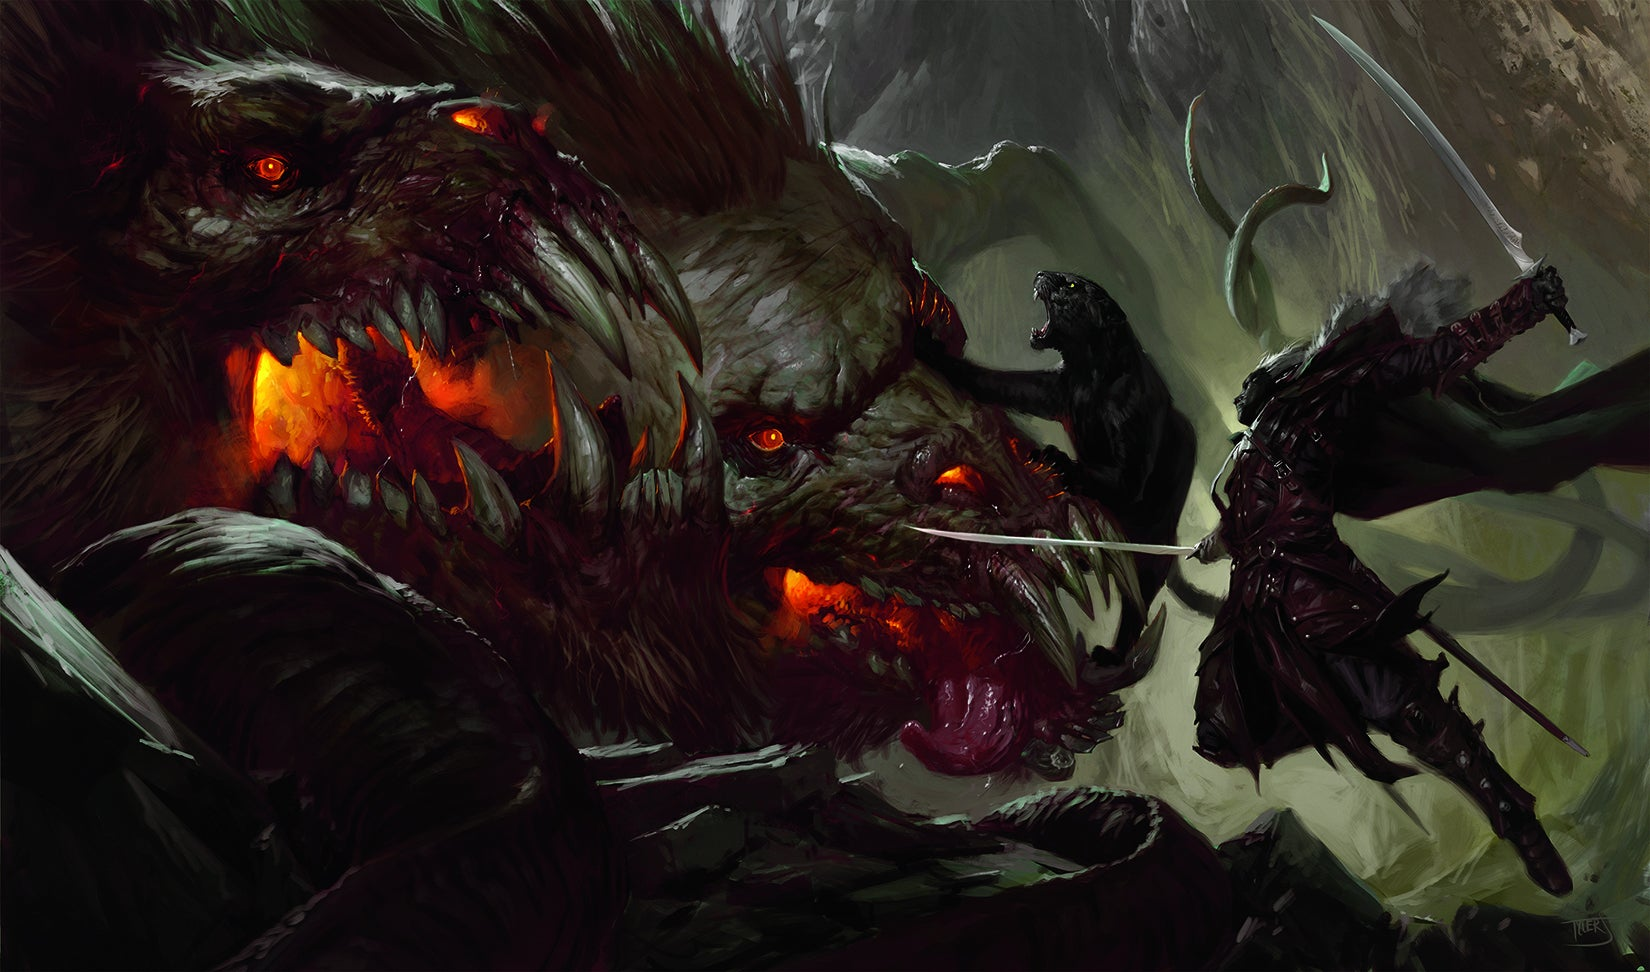 D&D's Next Storyline Is All About That Drizzt